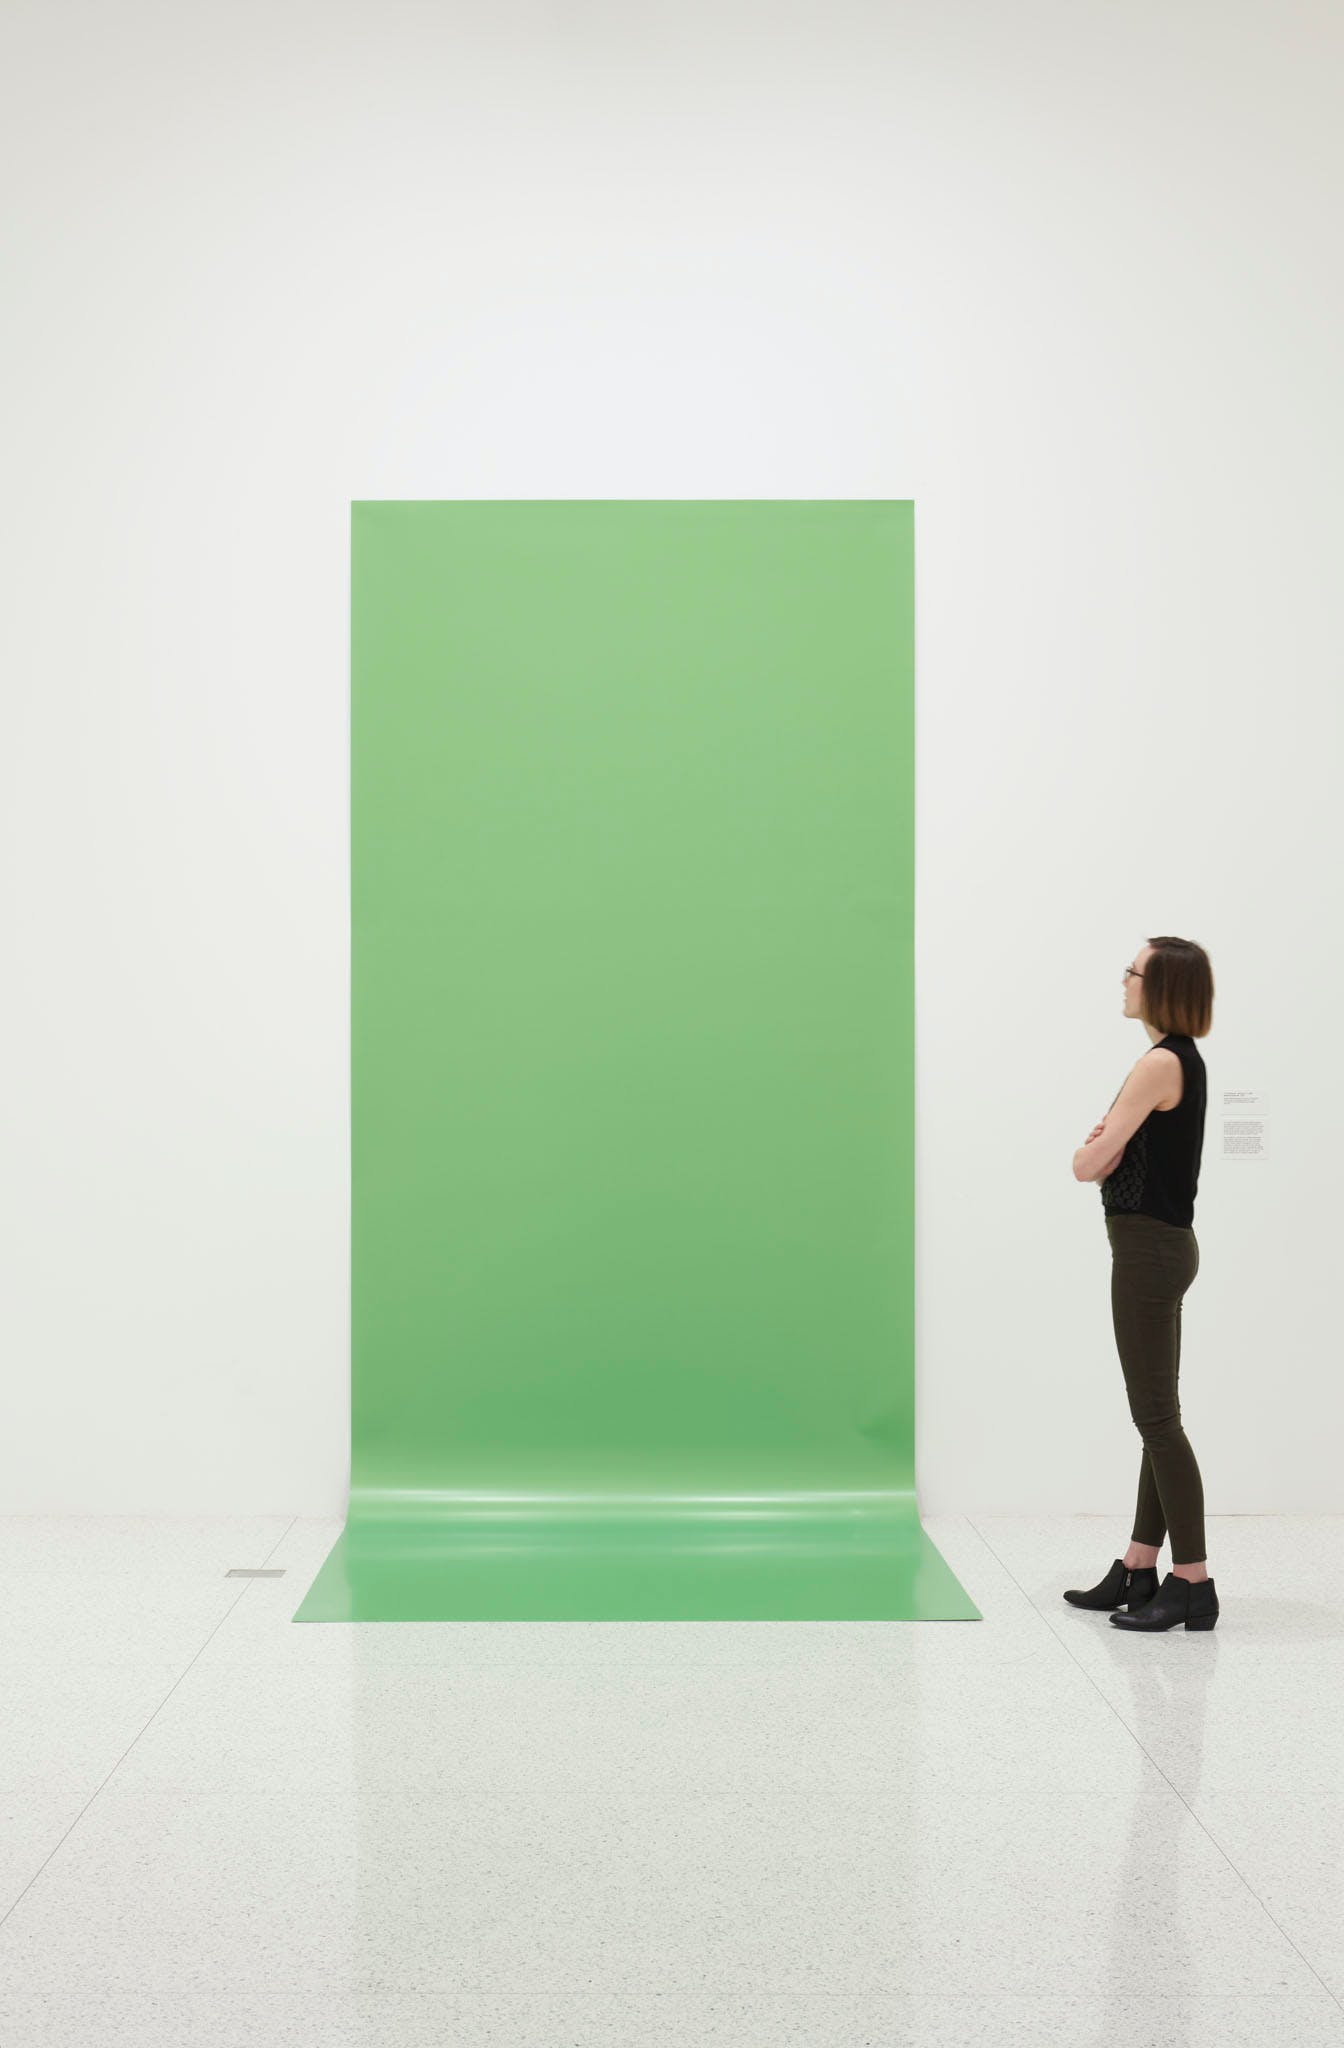 View of the exhibition Ordinary Pictures, 2016; Liz Deschenes Green Screen #4, 1966